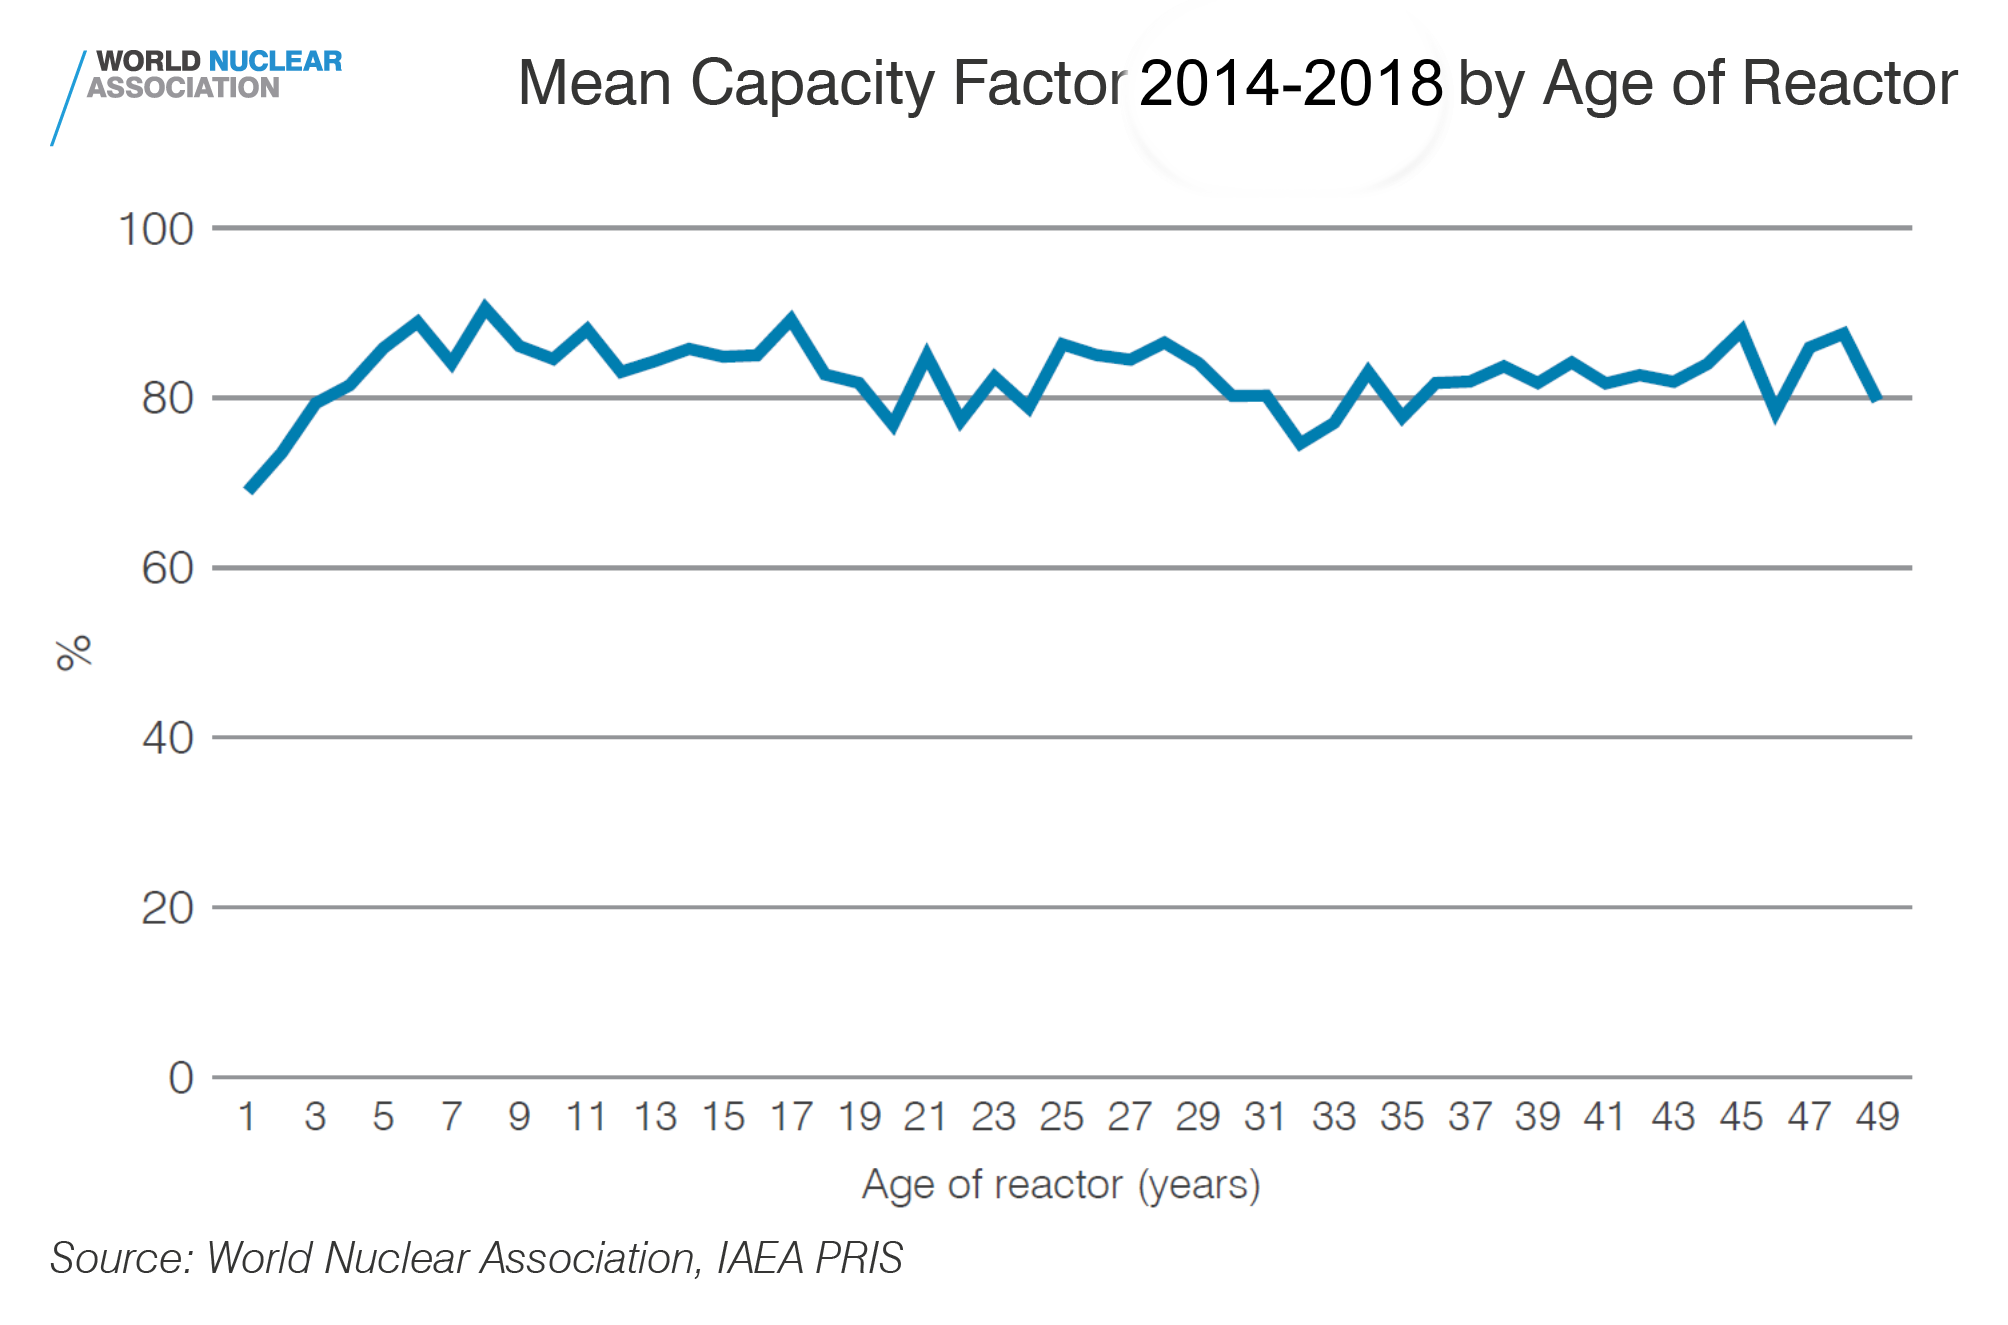 Mean capacity factor 2014-2018 by age of reactor